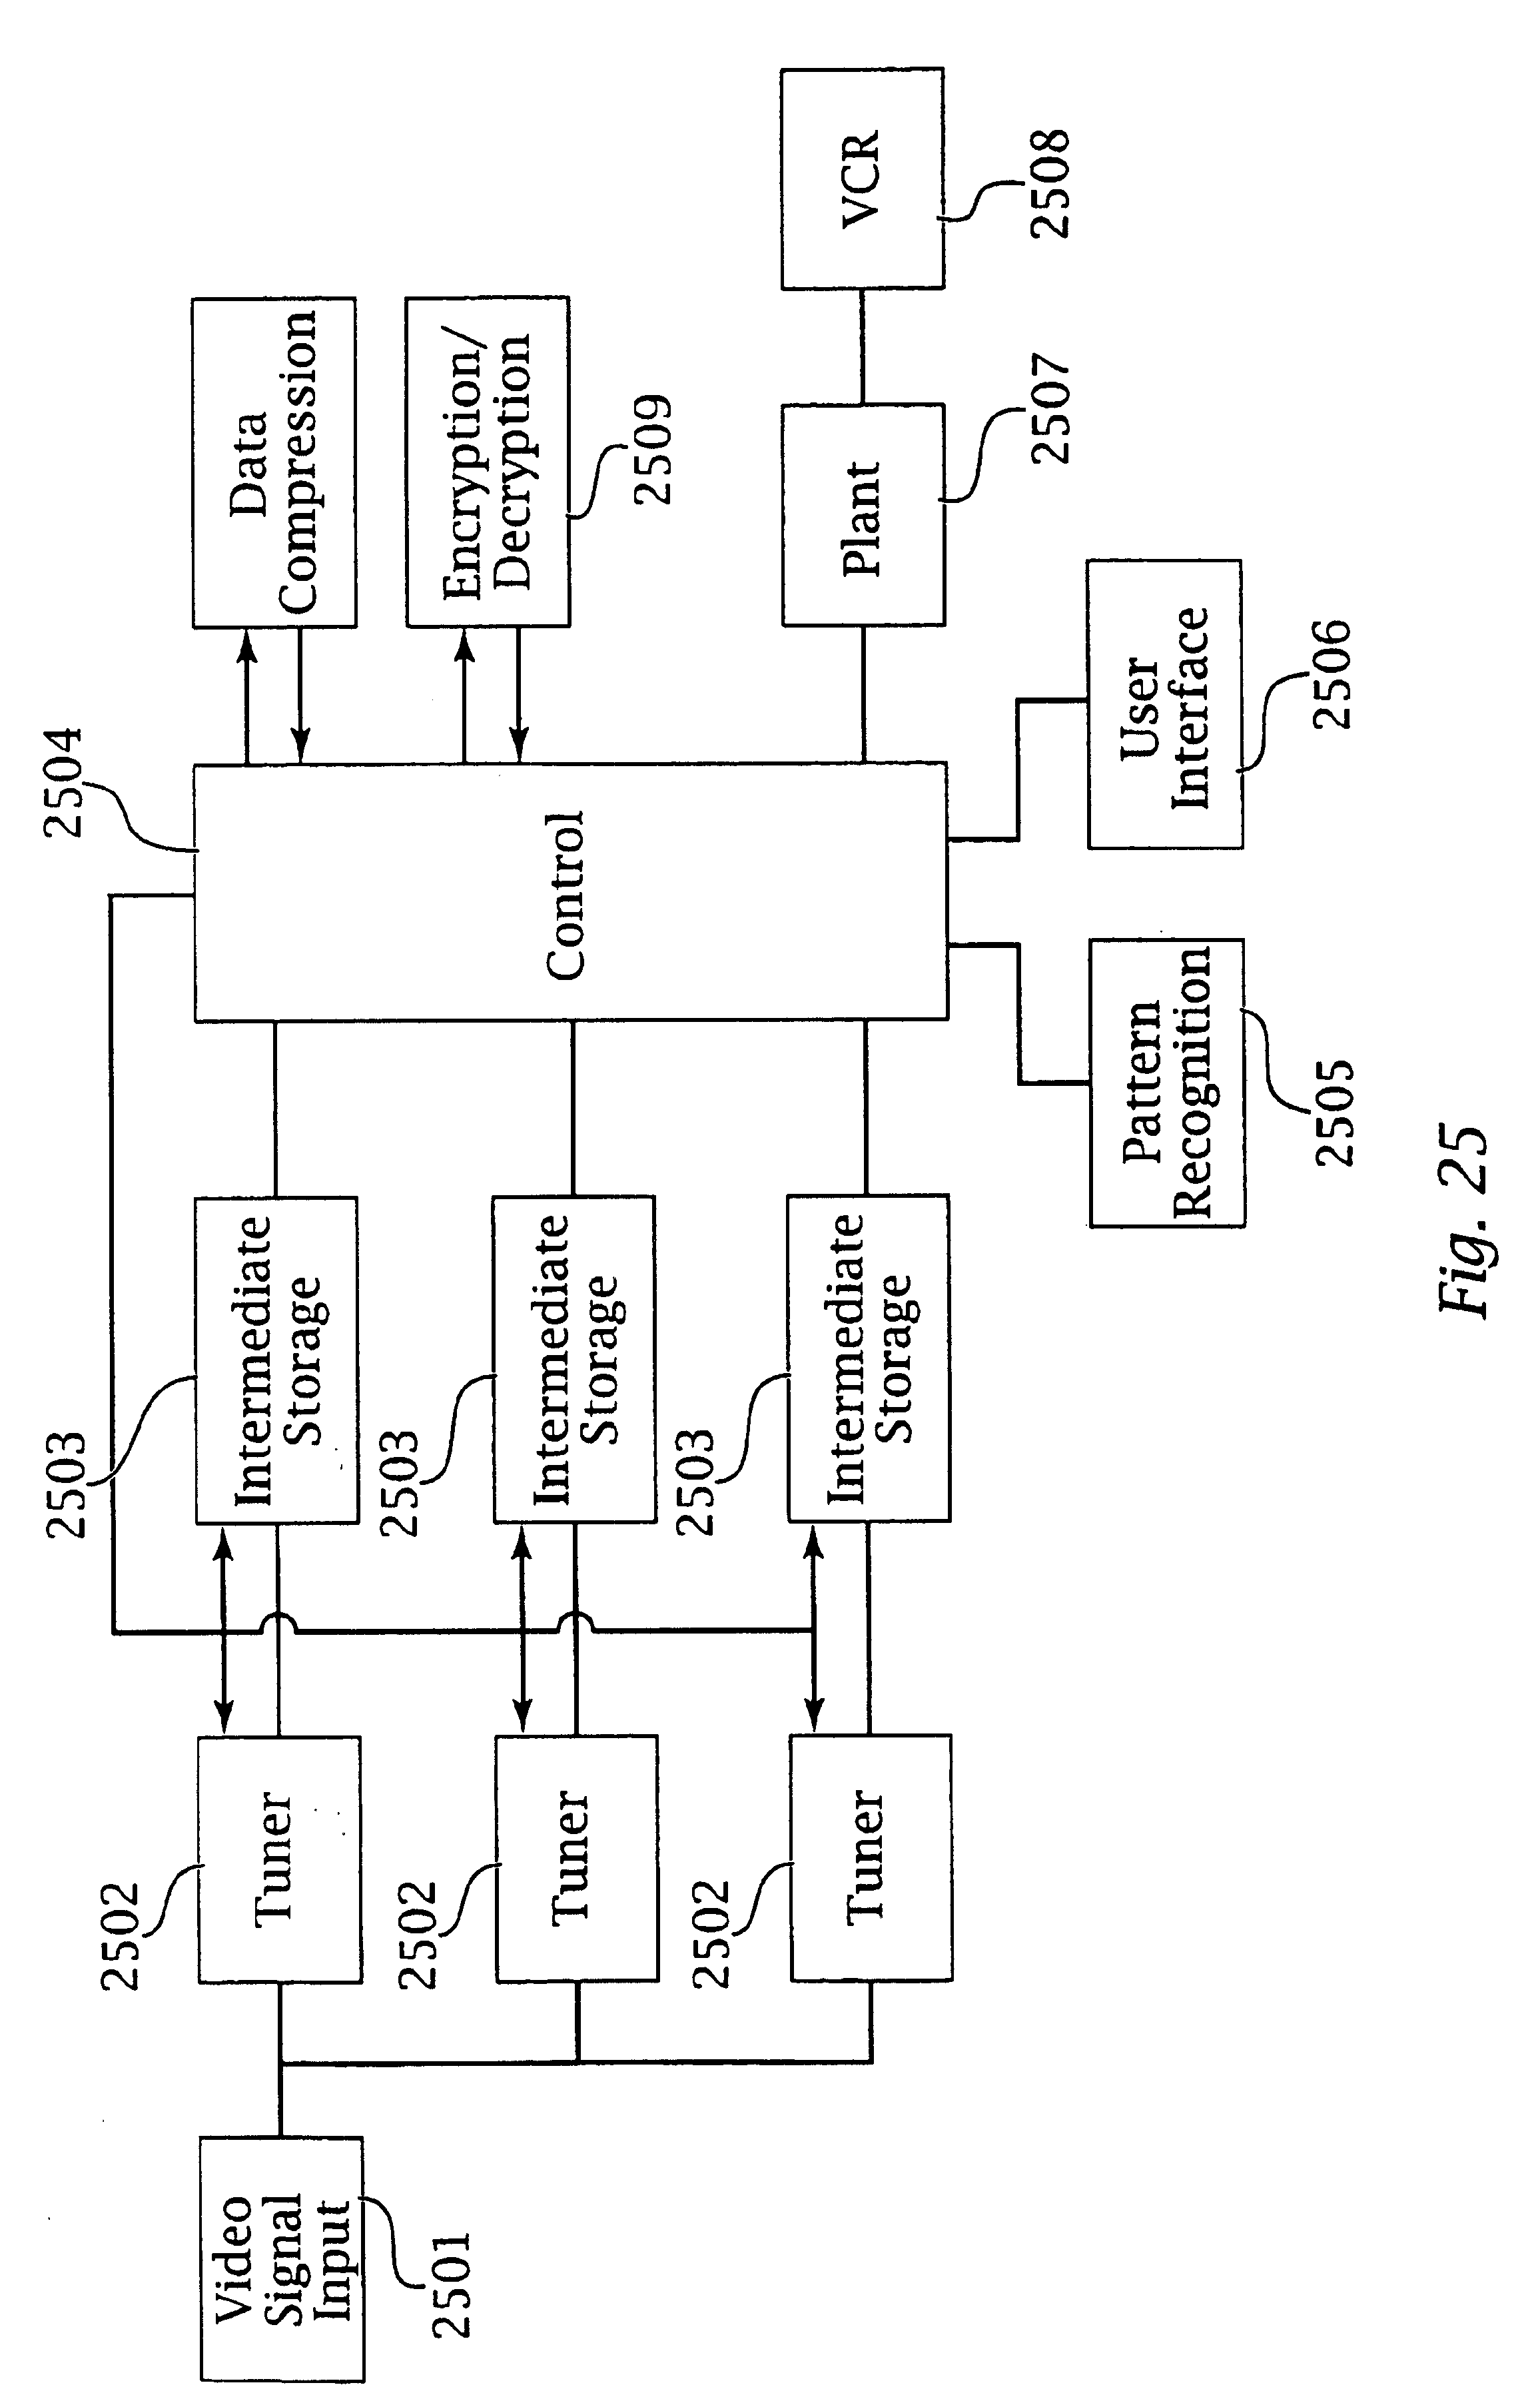 Patent Us 6850252 B1 Wiring Diagram For Smc Modem 0 Petitions